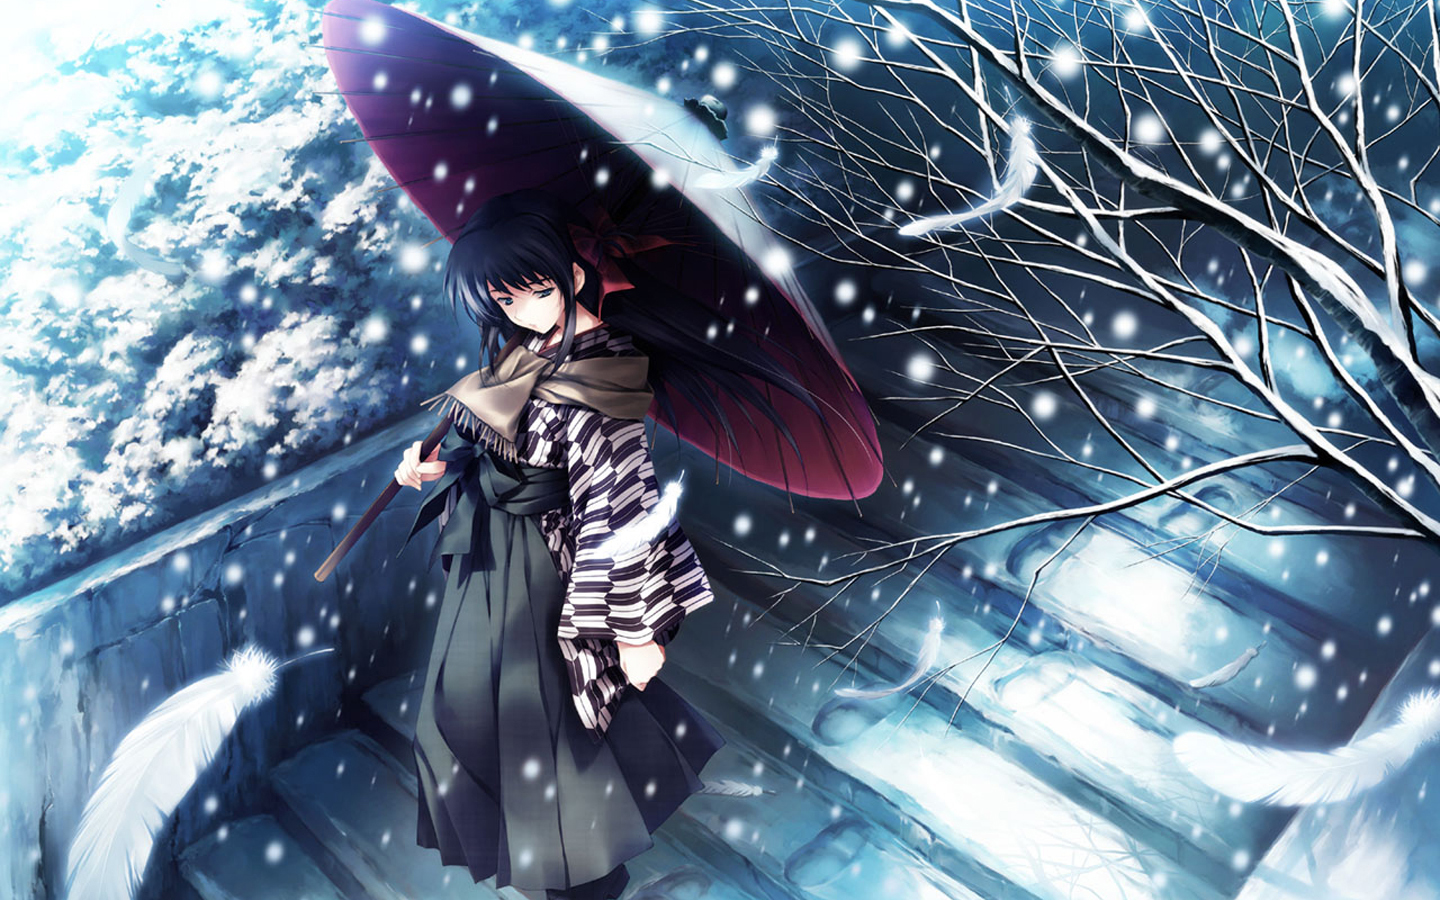 Anime wallpapers anime stock photos - Wallpaper manga anime ...